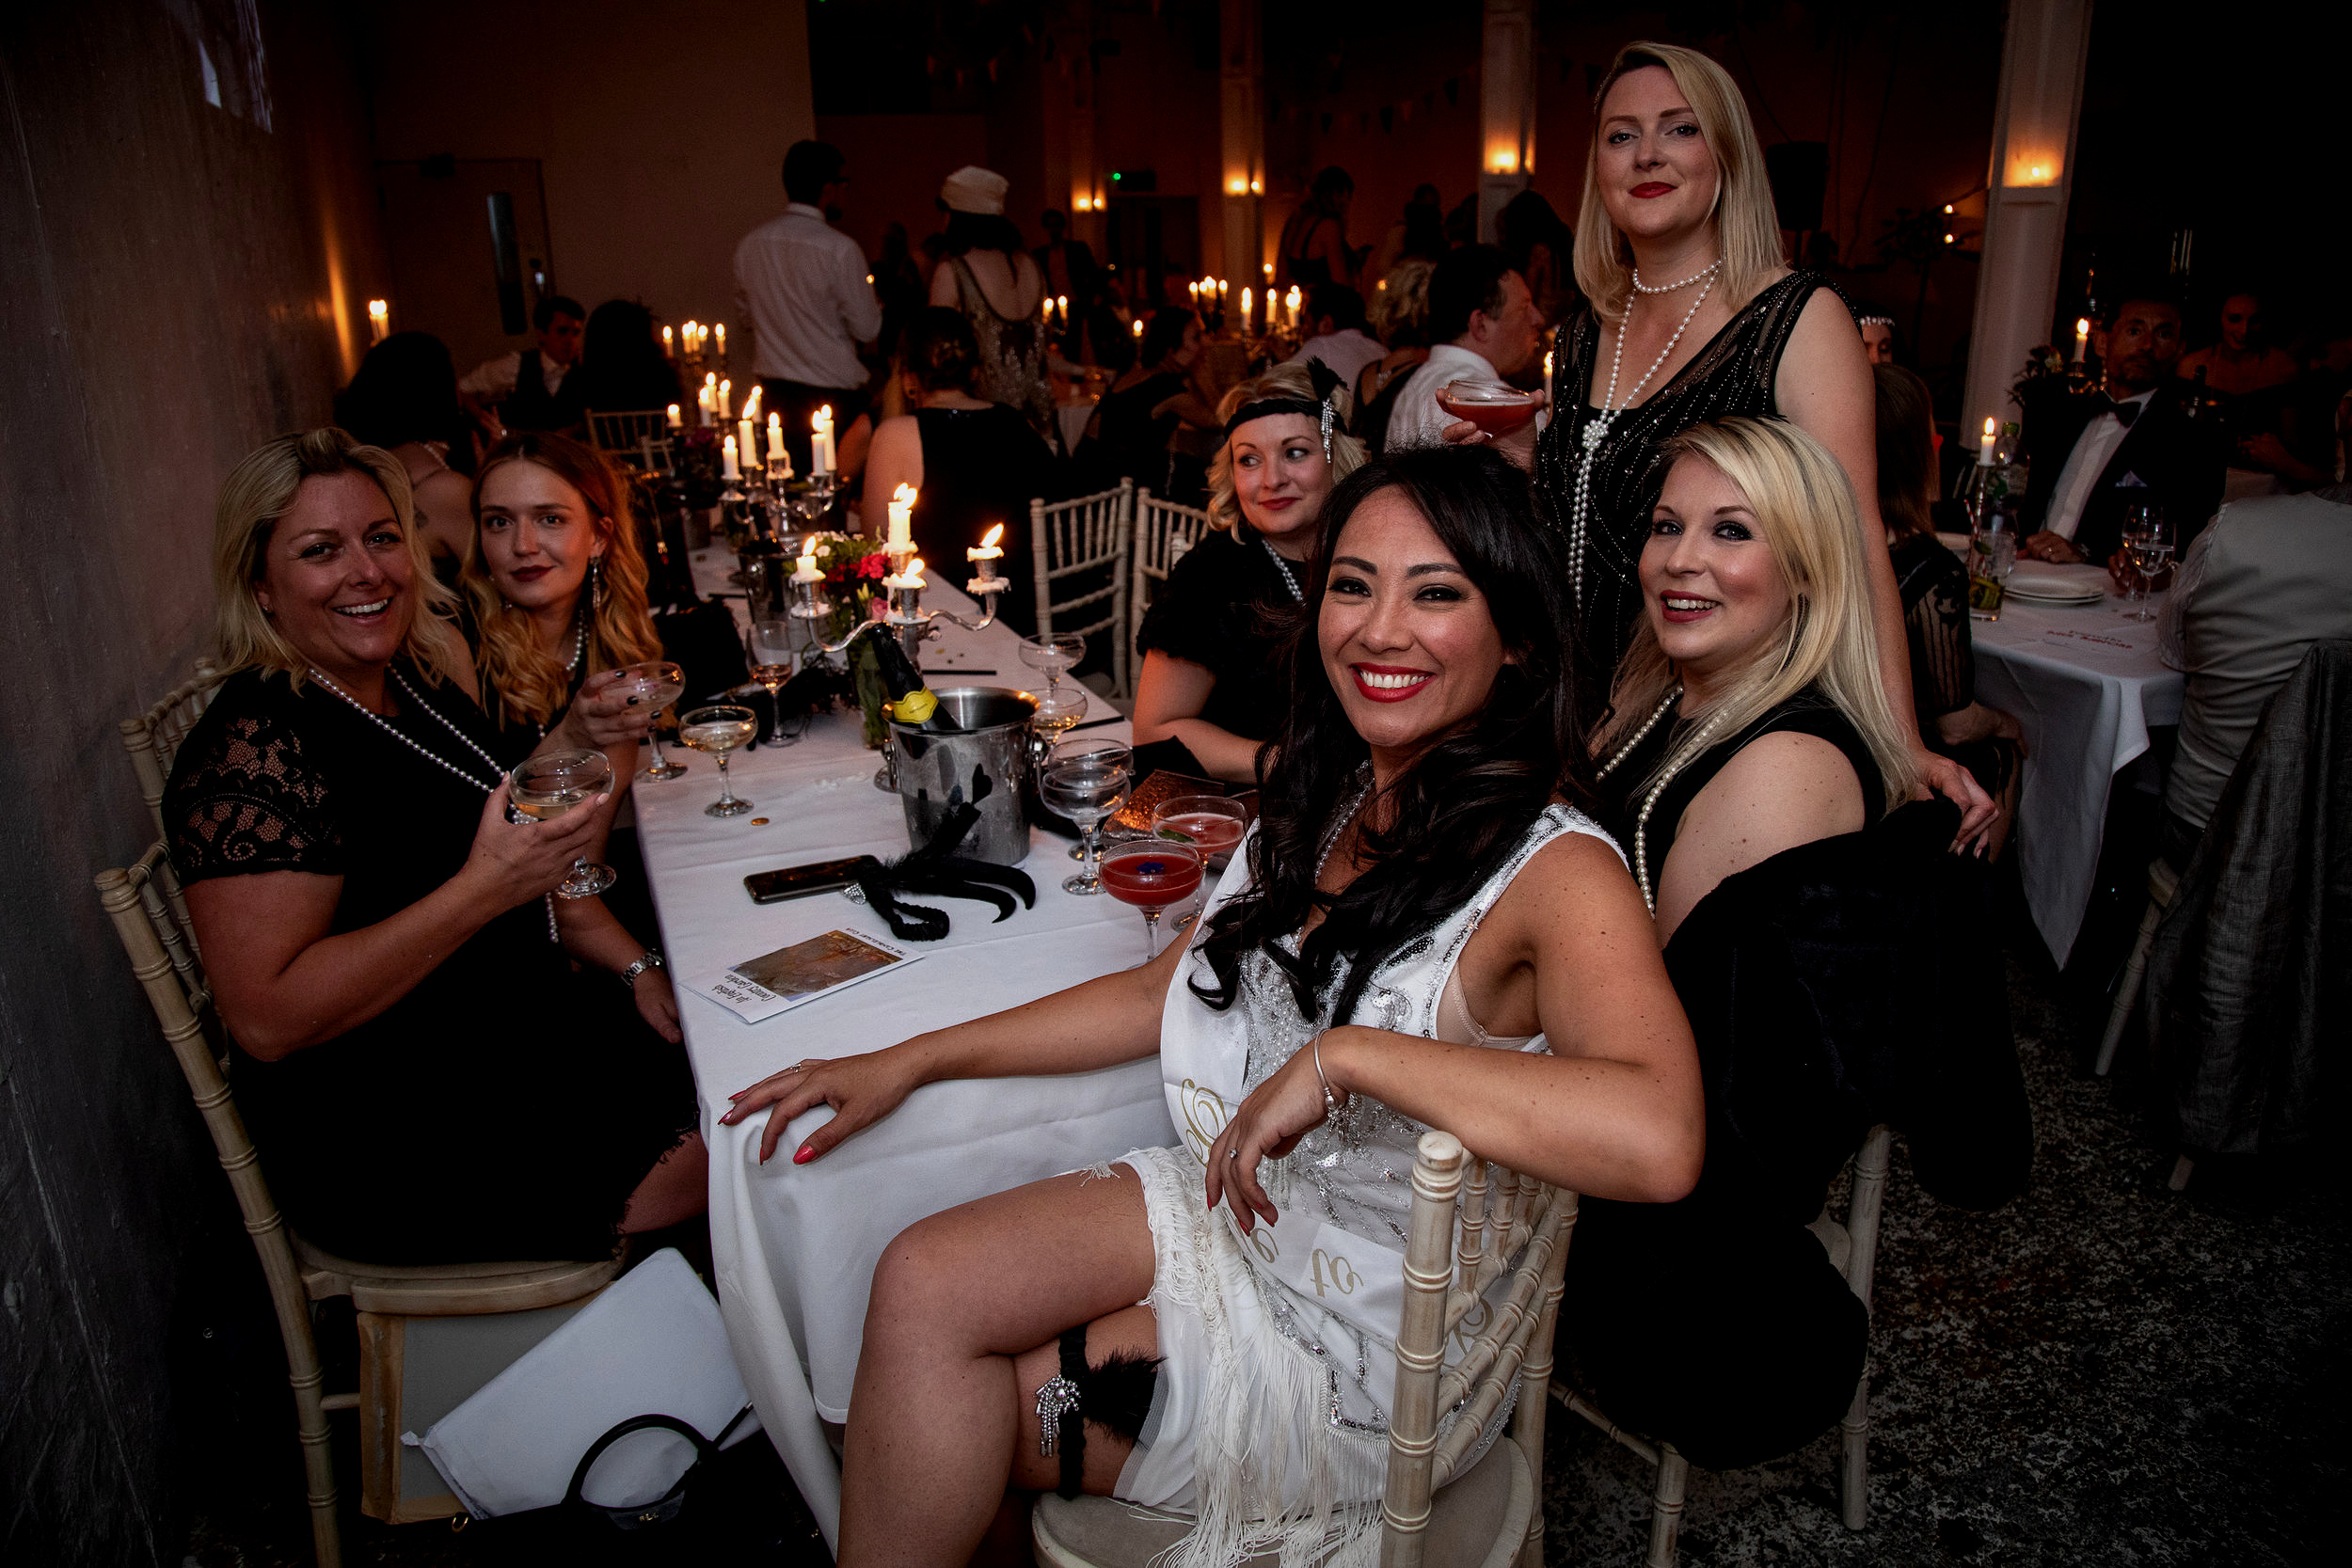 The Candlelight Club parties are perfect for hen parties to enjoy a night out full of glamour and glitz